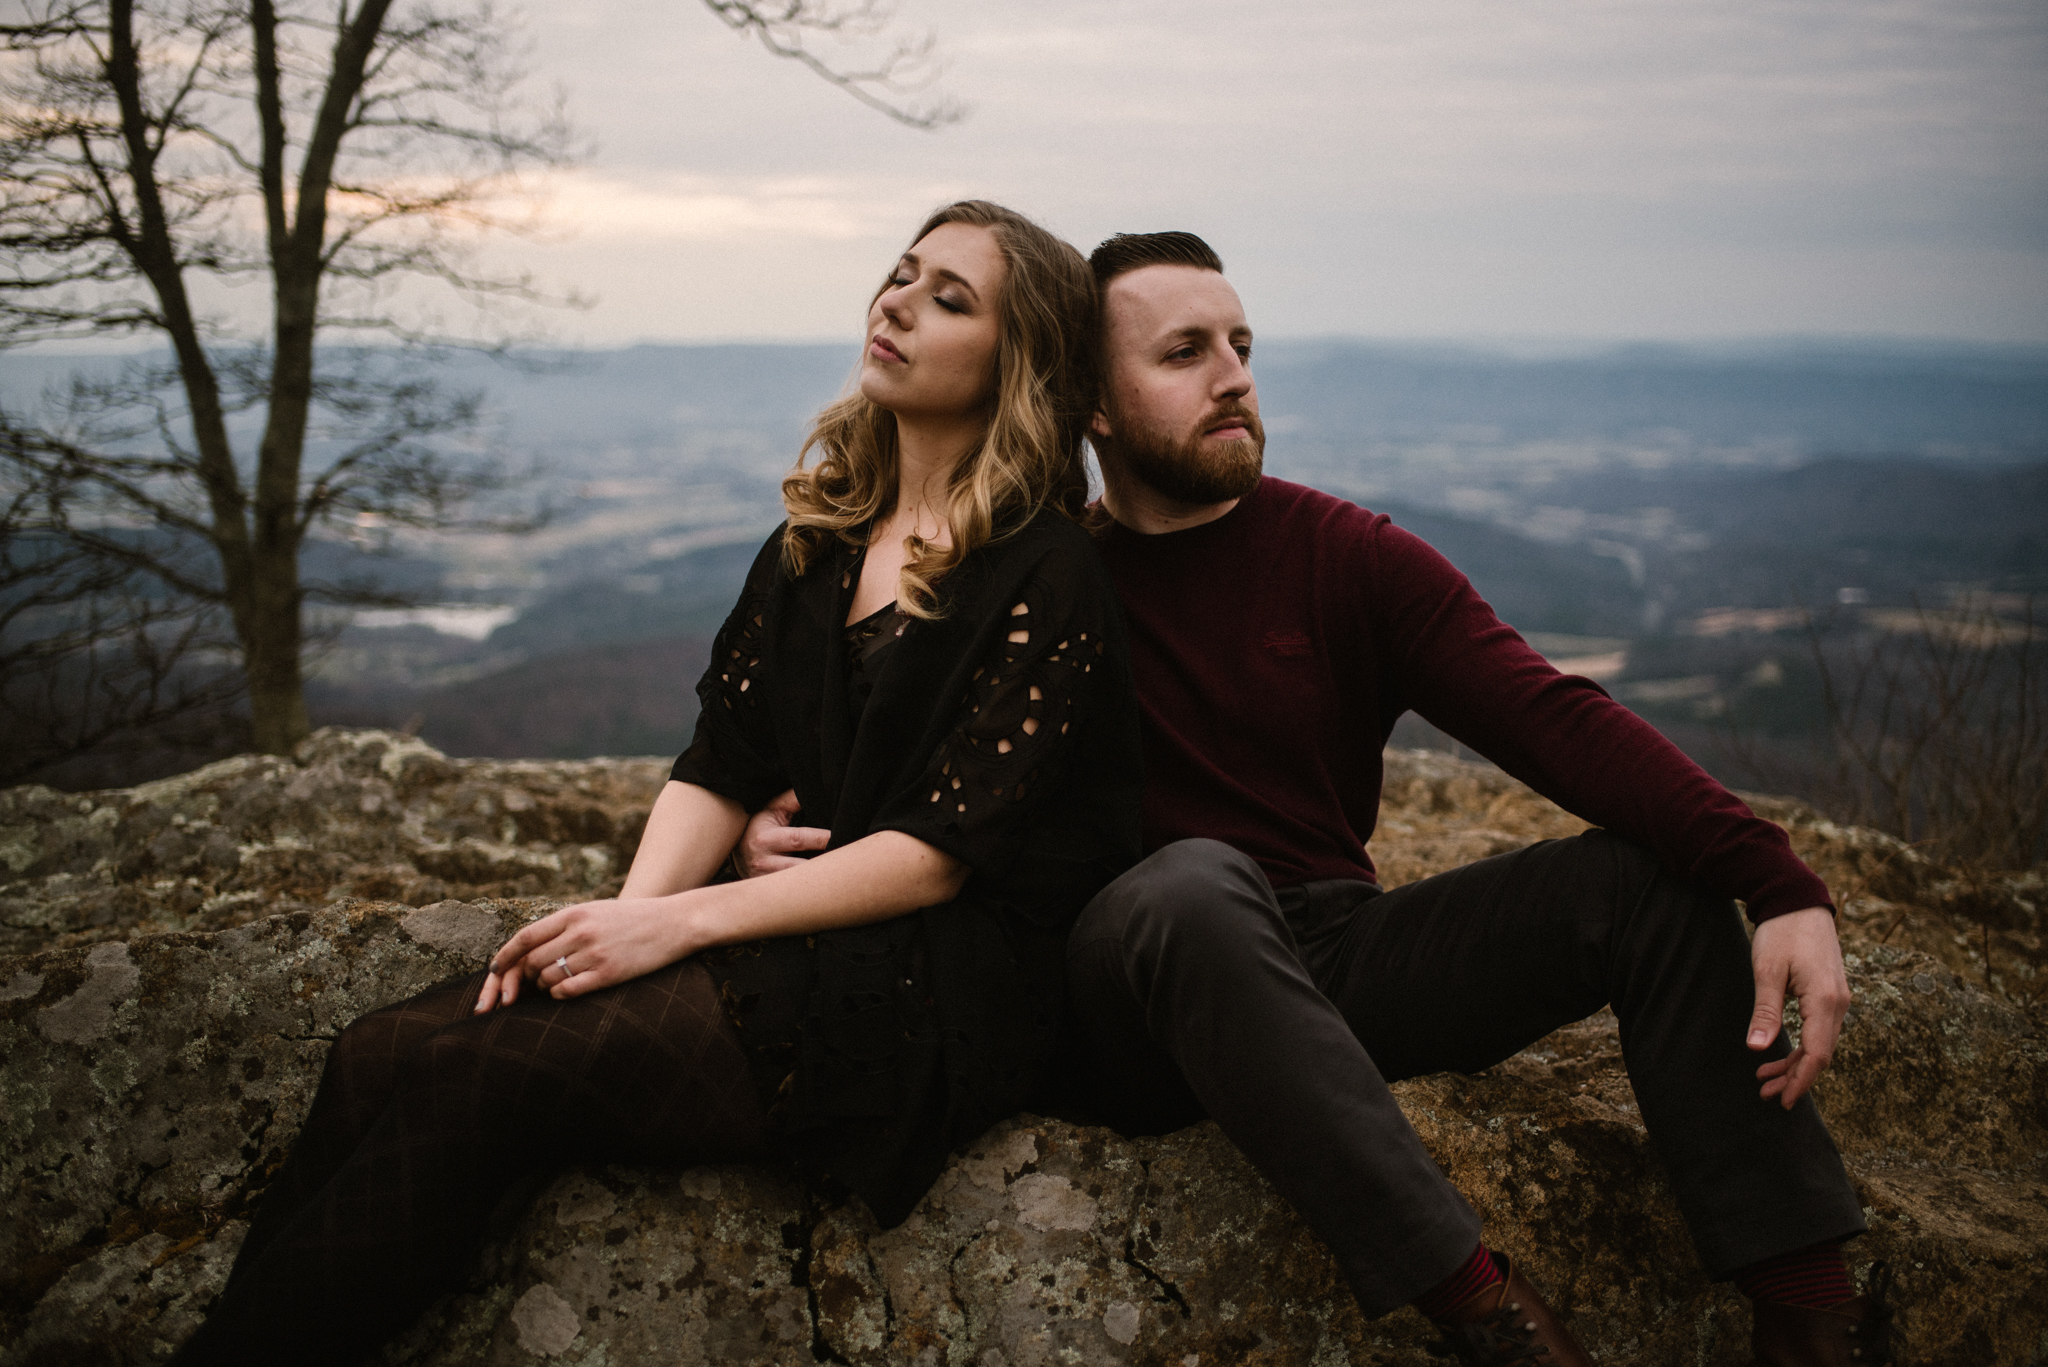 Nicole and Victor - Shenandoah National Park Engagement Photography - Blue Ridge Mountains Adventure Photography - White Sails Creative Photography_18.jpg